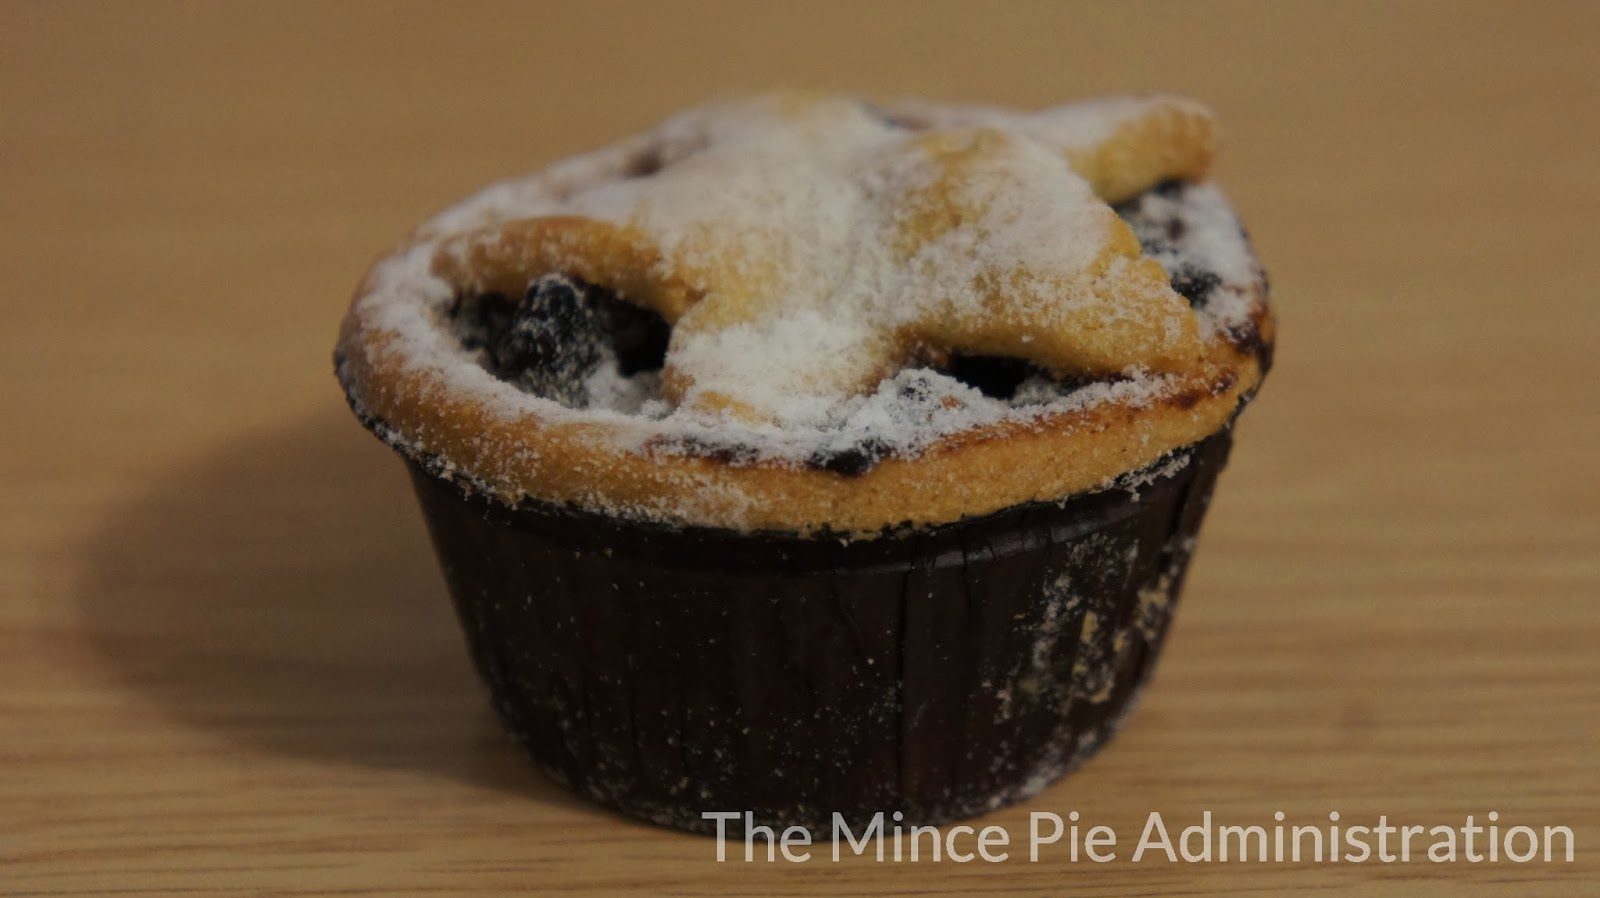 The Mince Pie Administration: Pret A Manger - Mince Pie